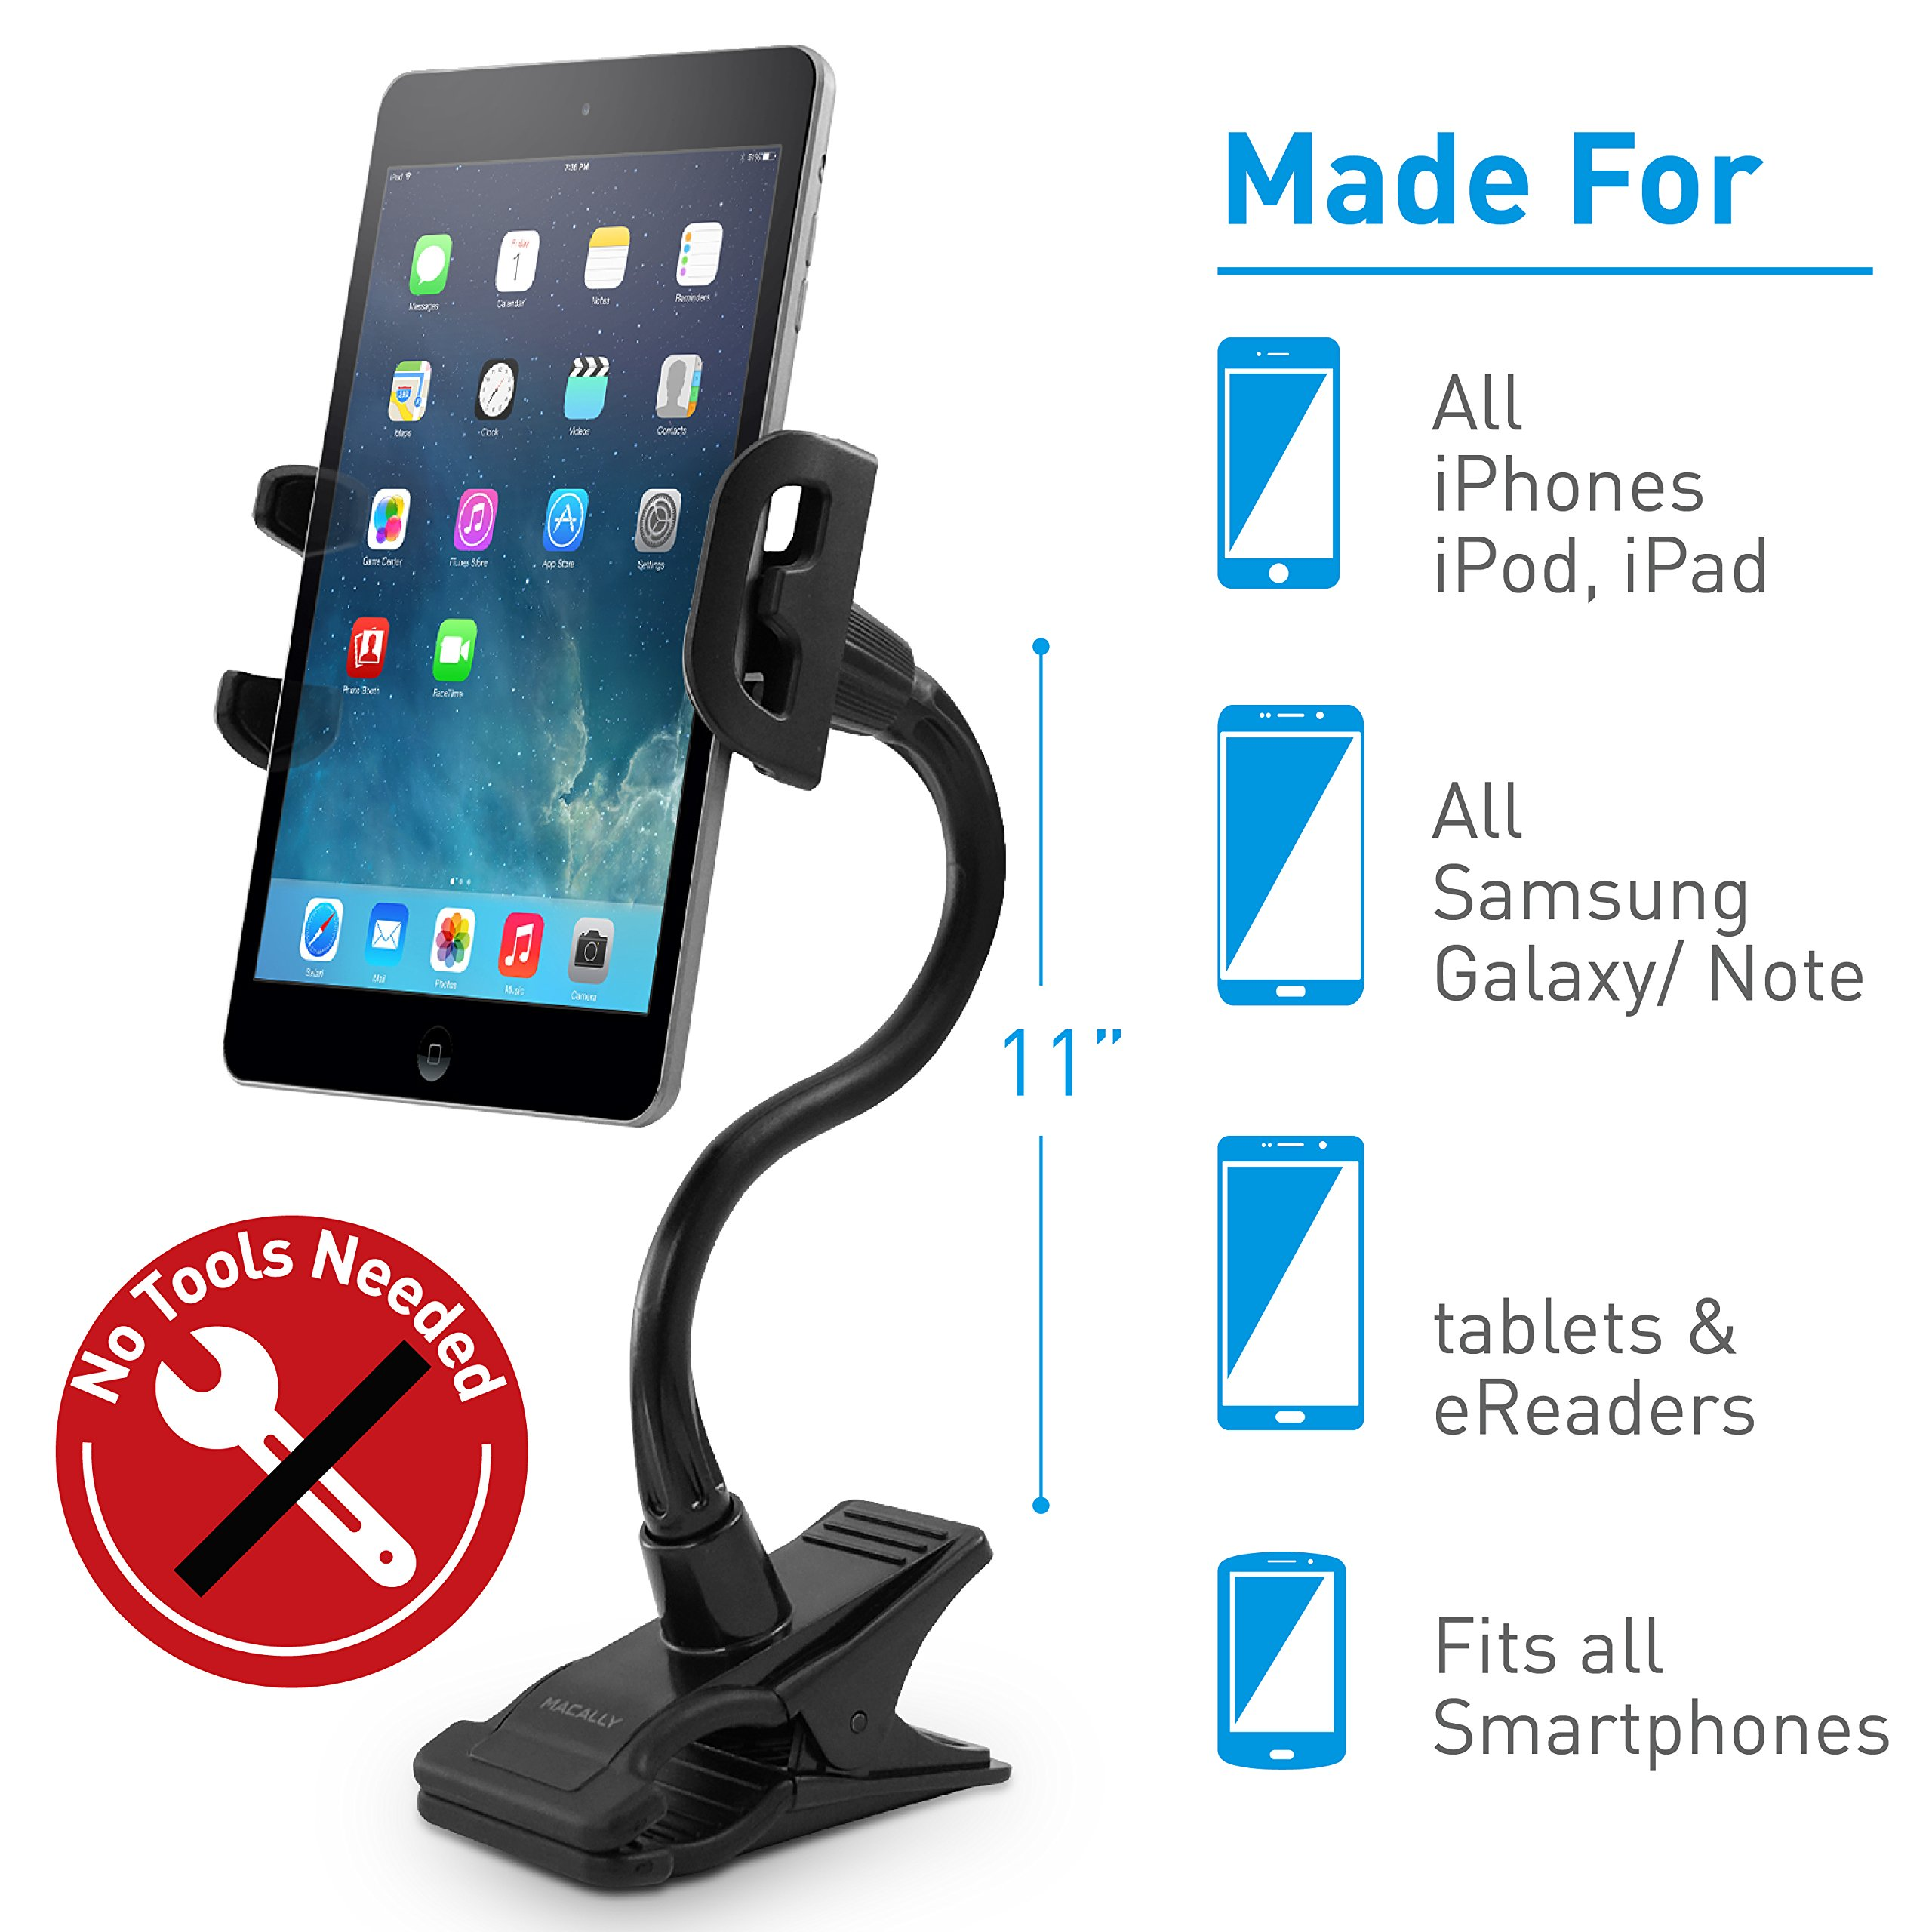 Macally Flexible and Adjustable Gooseneck Clip On Desk or Kitchen Table Holder Clamp Mount for iPad Air / Mini, Tablets, iPhone XS XS Max XR X 8 Plus, Moto Smartphones, & Nintendo Switch (ClipMount) by Macally (Image #2)